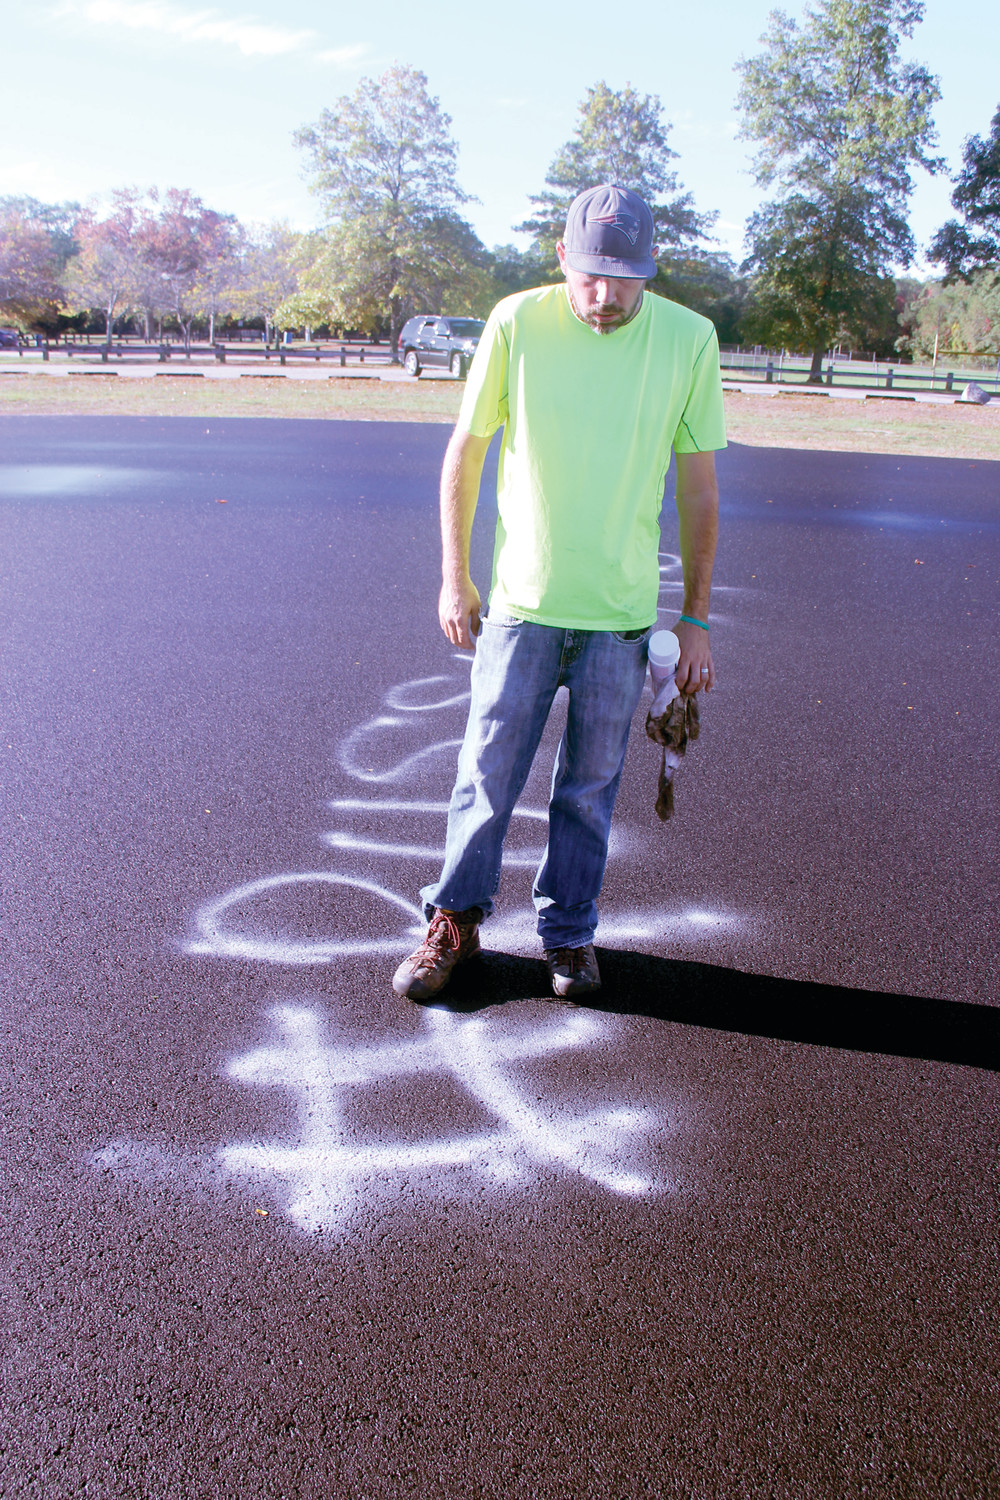 The recently completed surface for a new in-line skating rink at City Park was the target of vandalism over the weekend. Tom McGovern of the Department of Public Works assesses the damage that will be painted over.